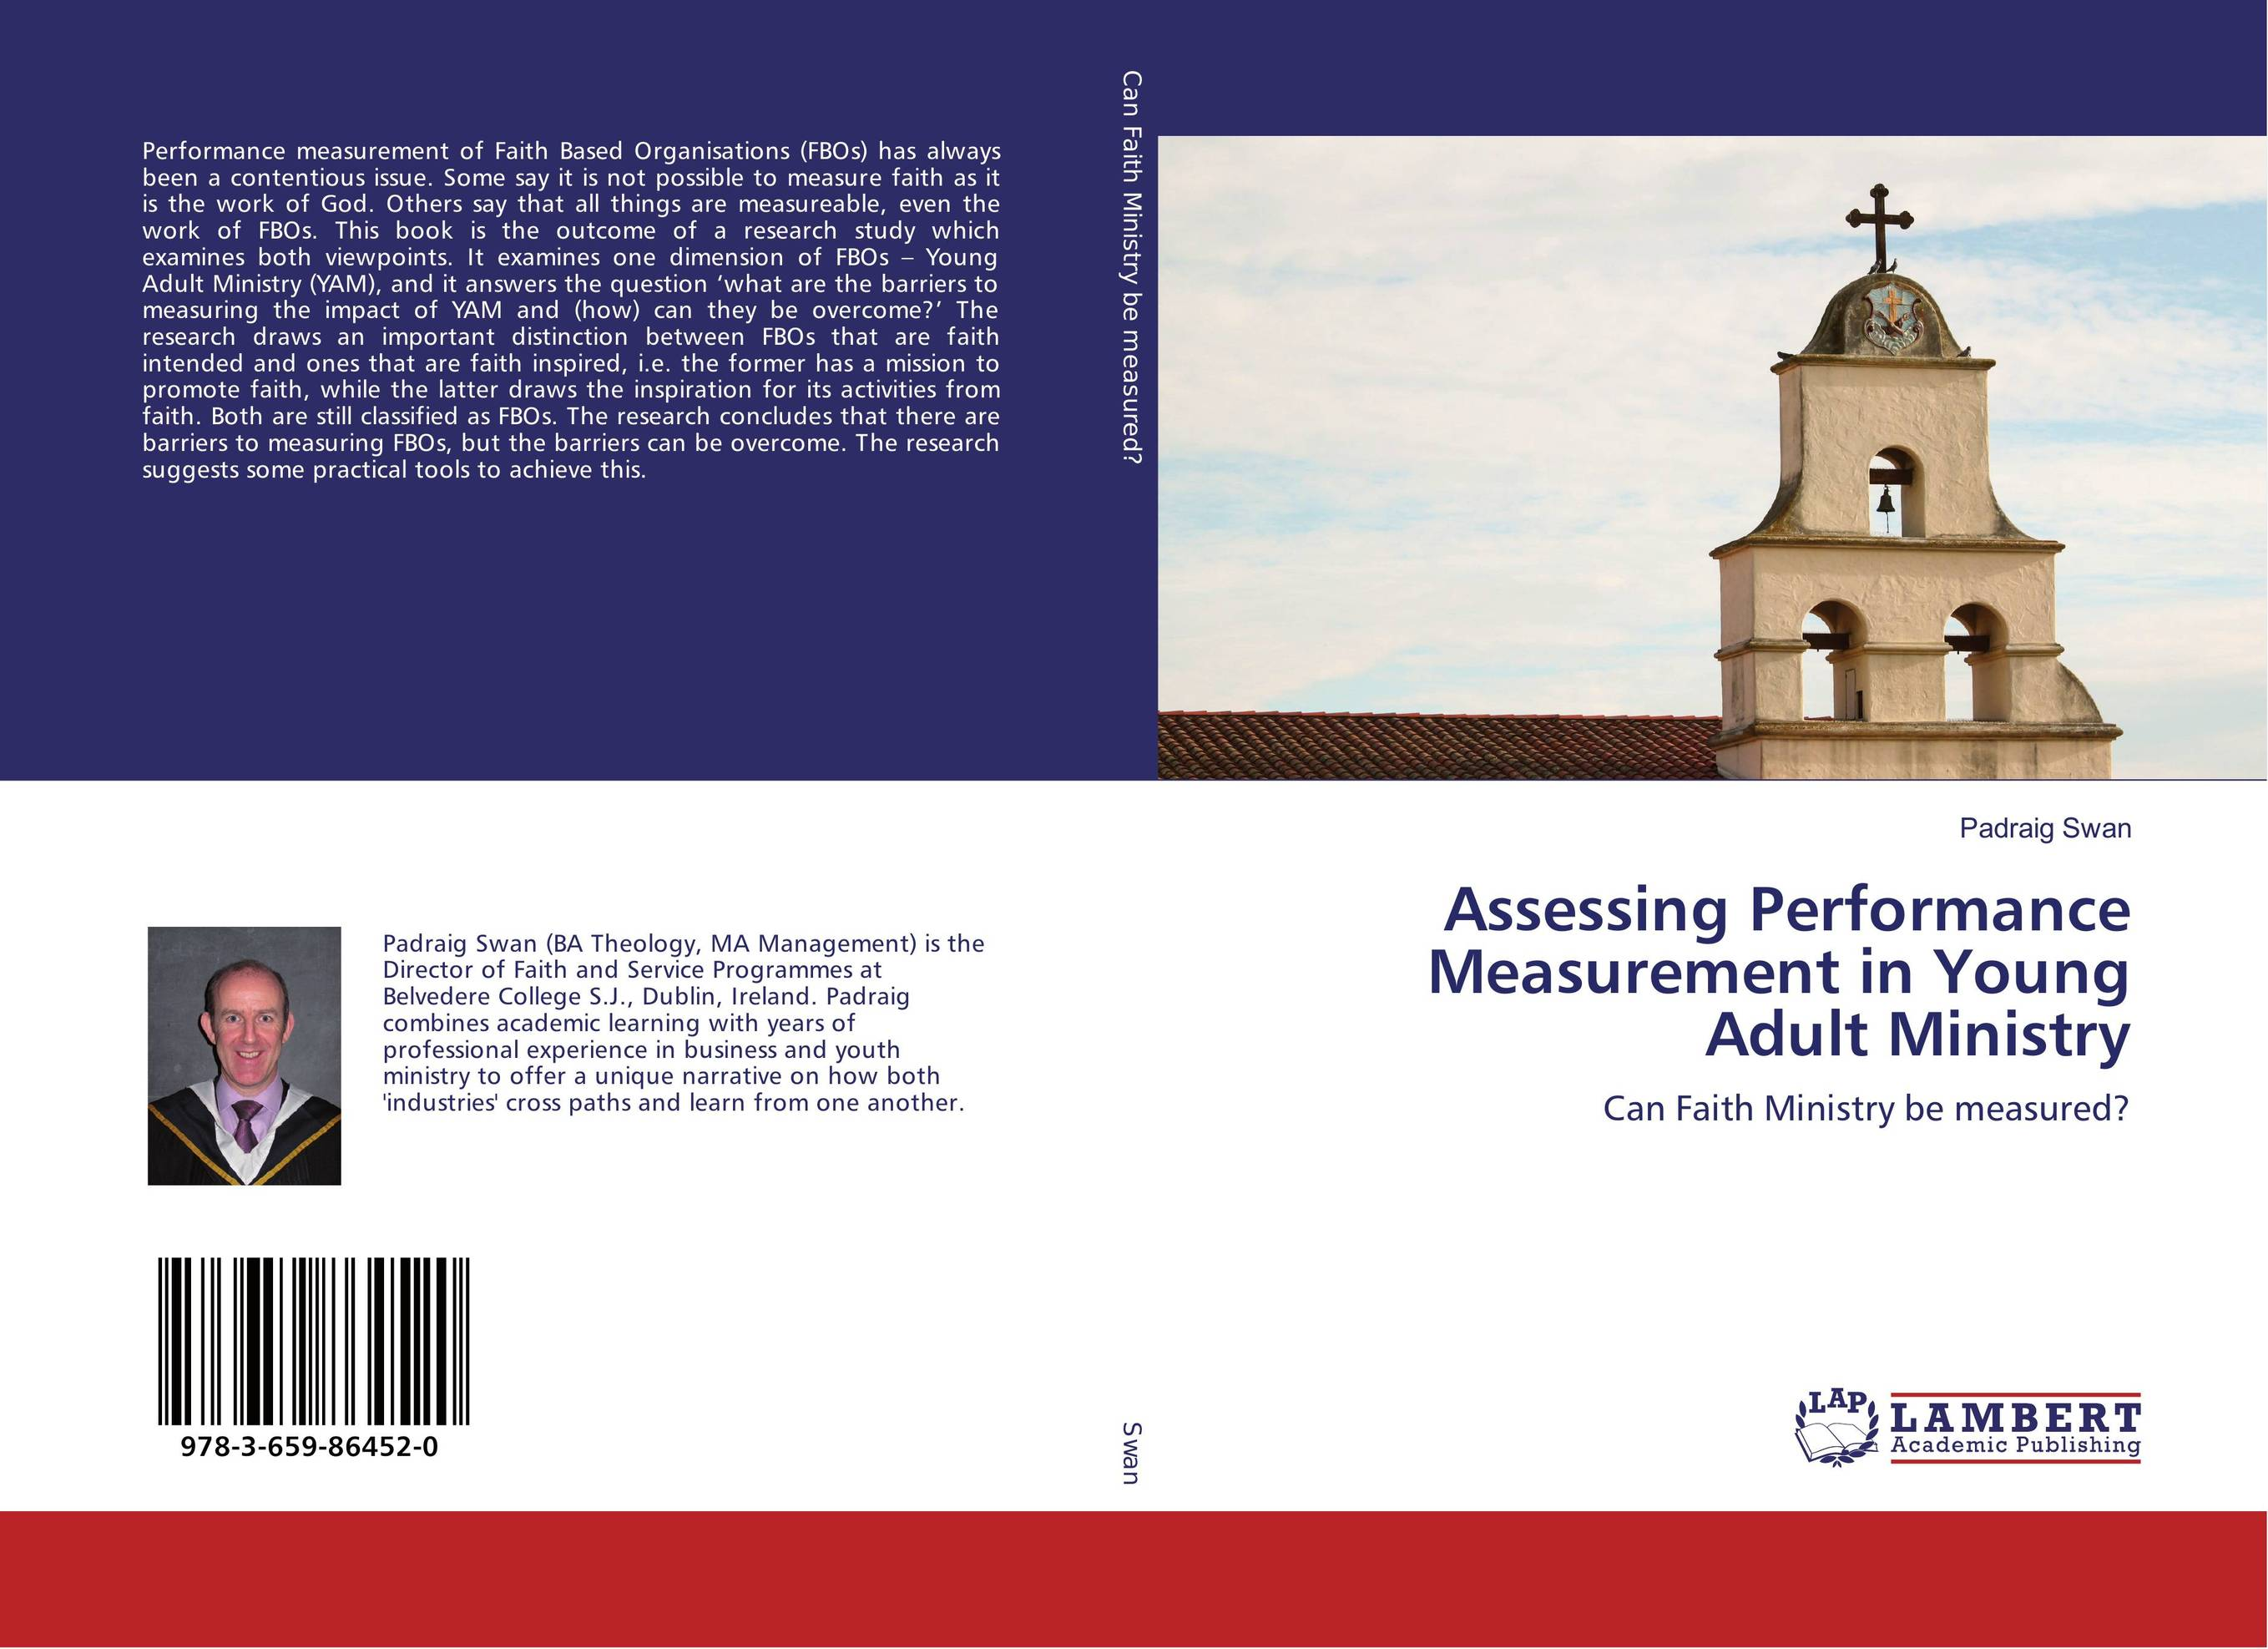 Assessing Performance Measurement in Young Adult Ministry seeing things as they are